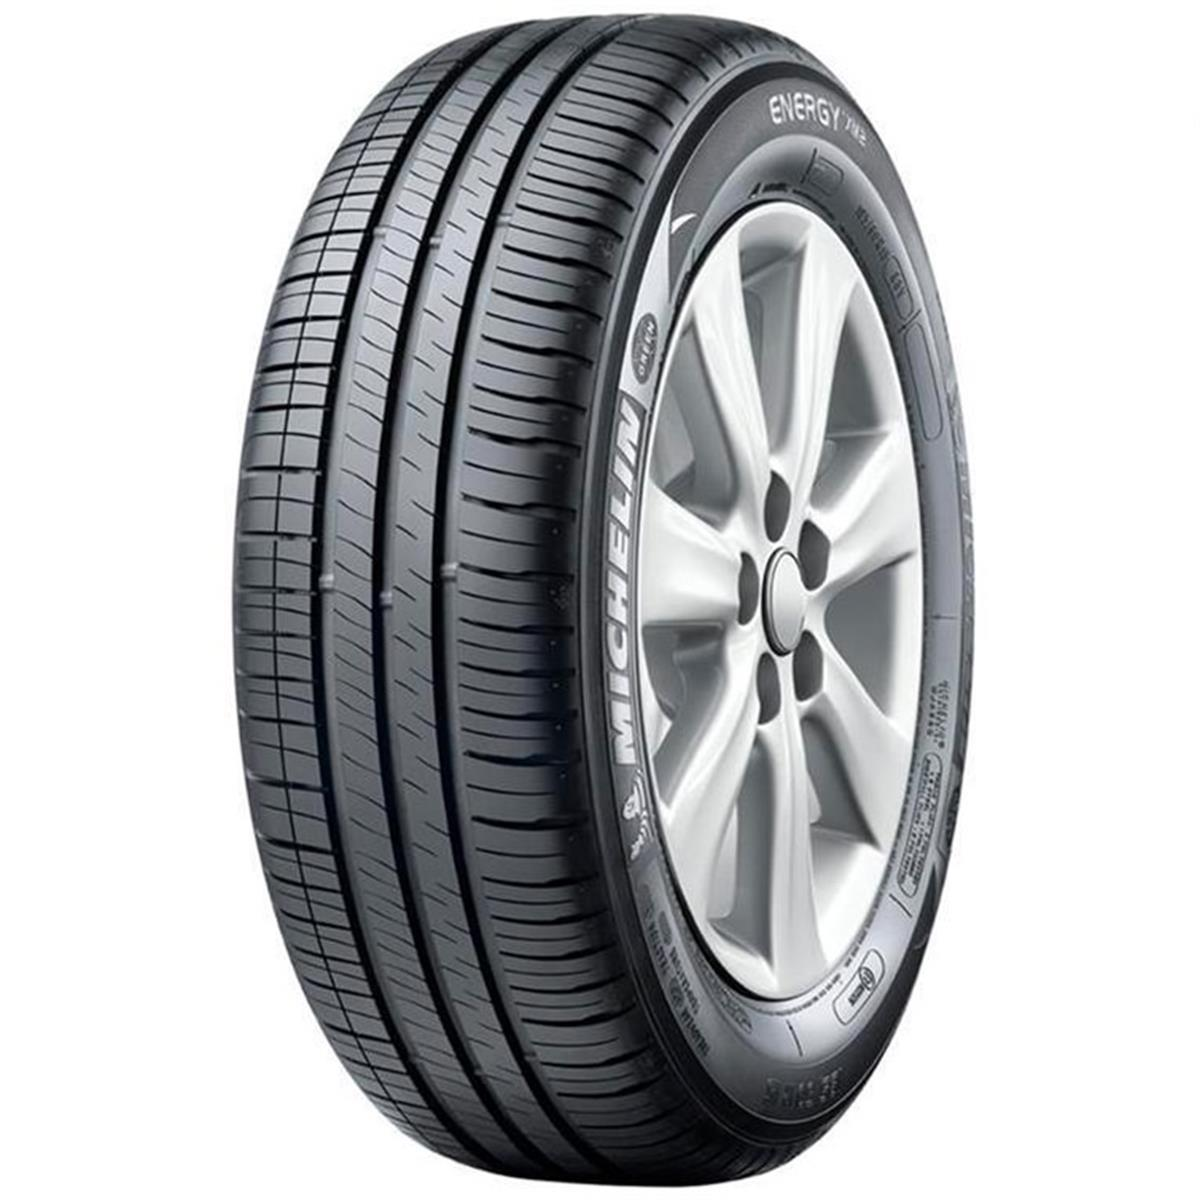 PNEU 185/55-16 83V EMERGY XM2 MICHELIN